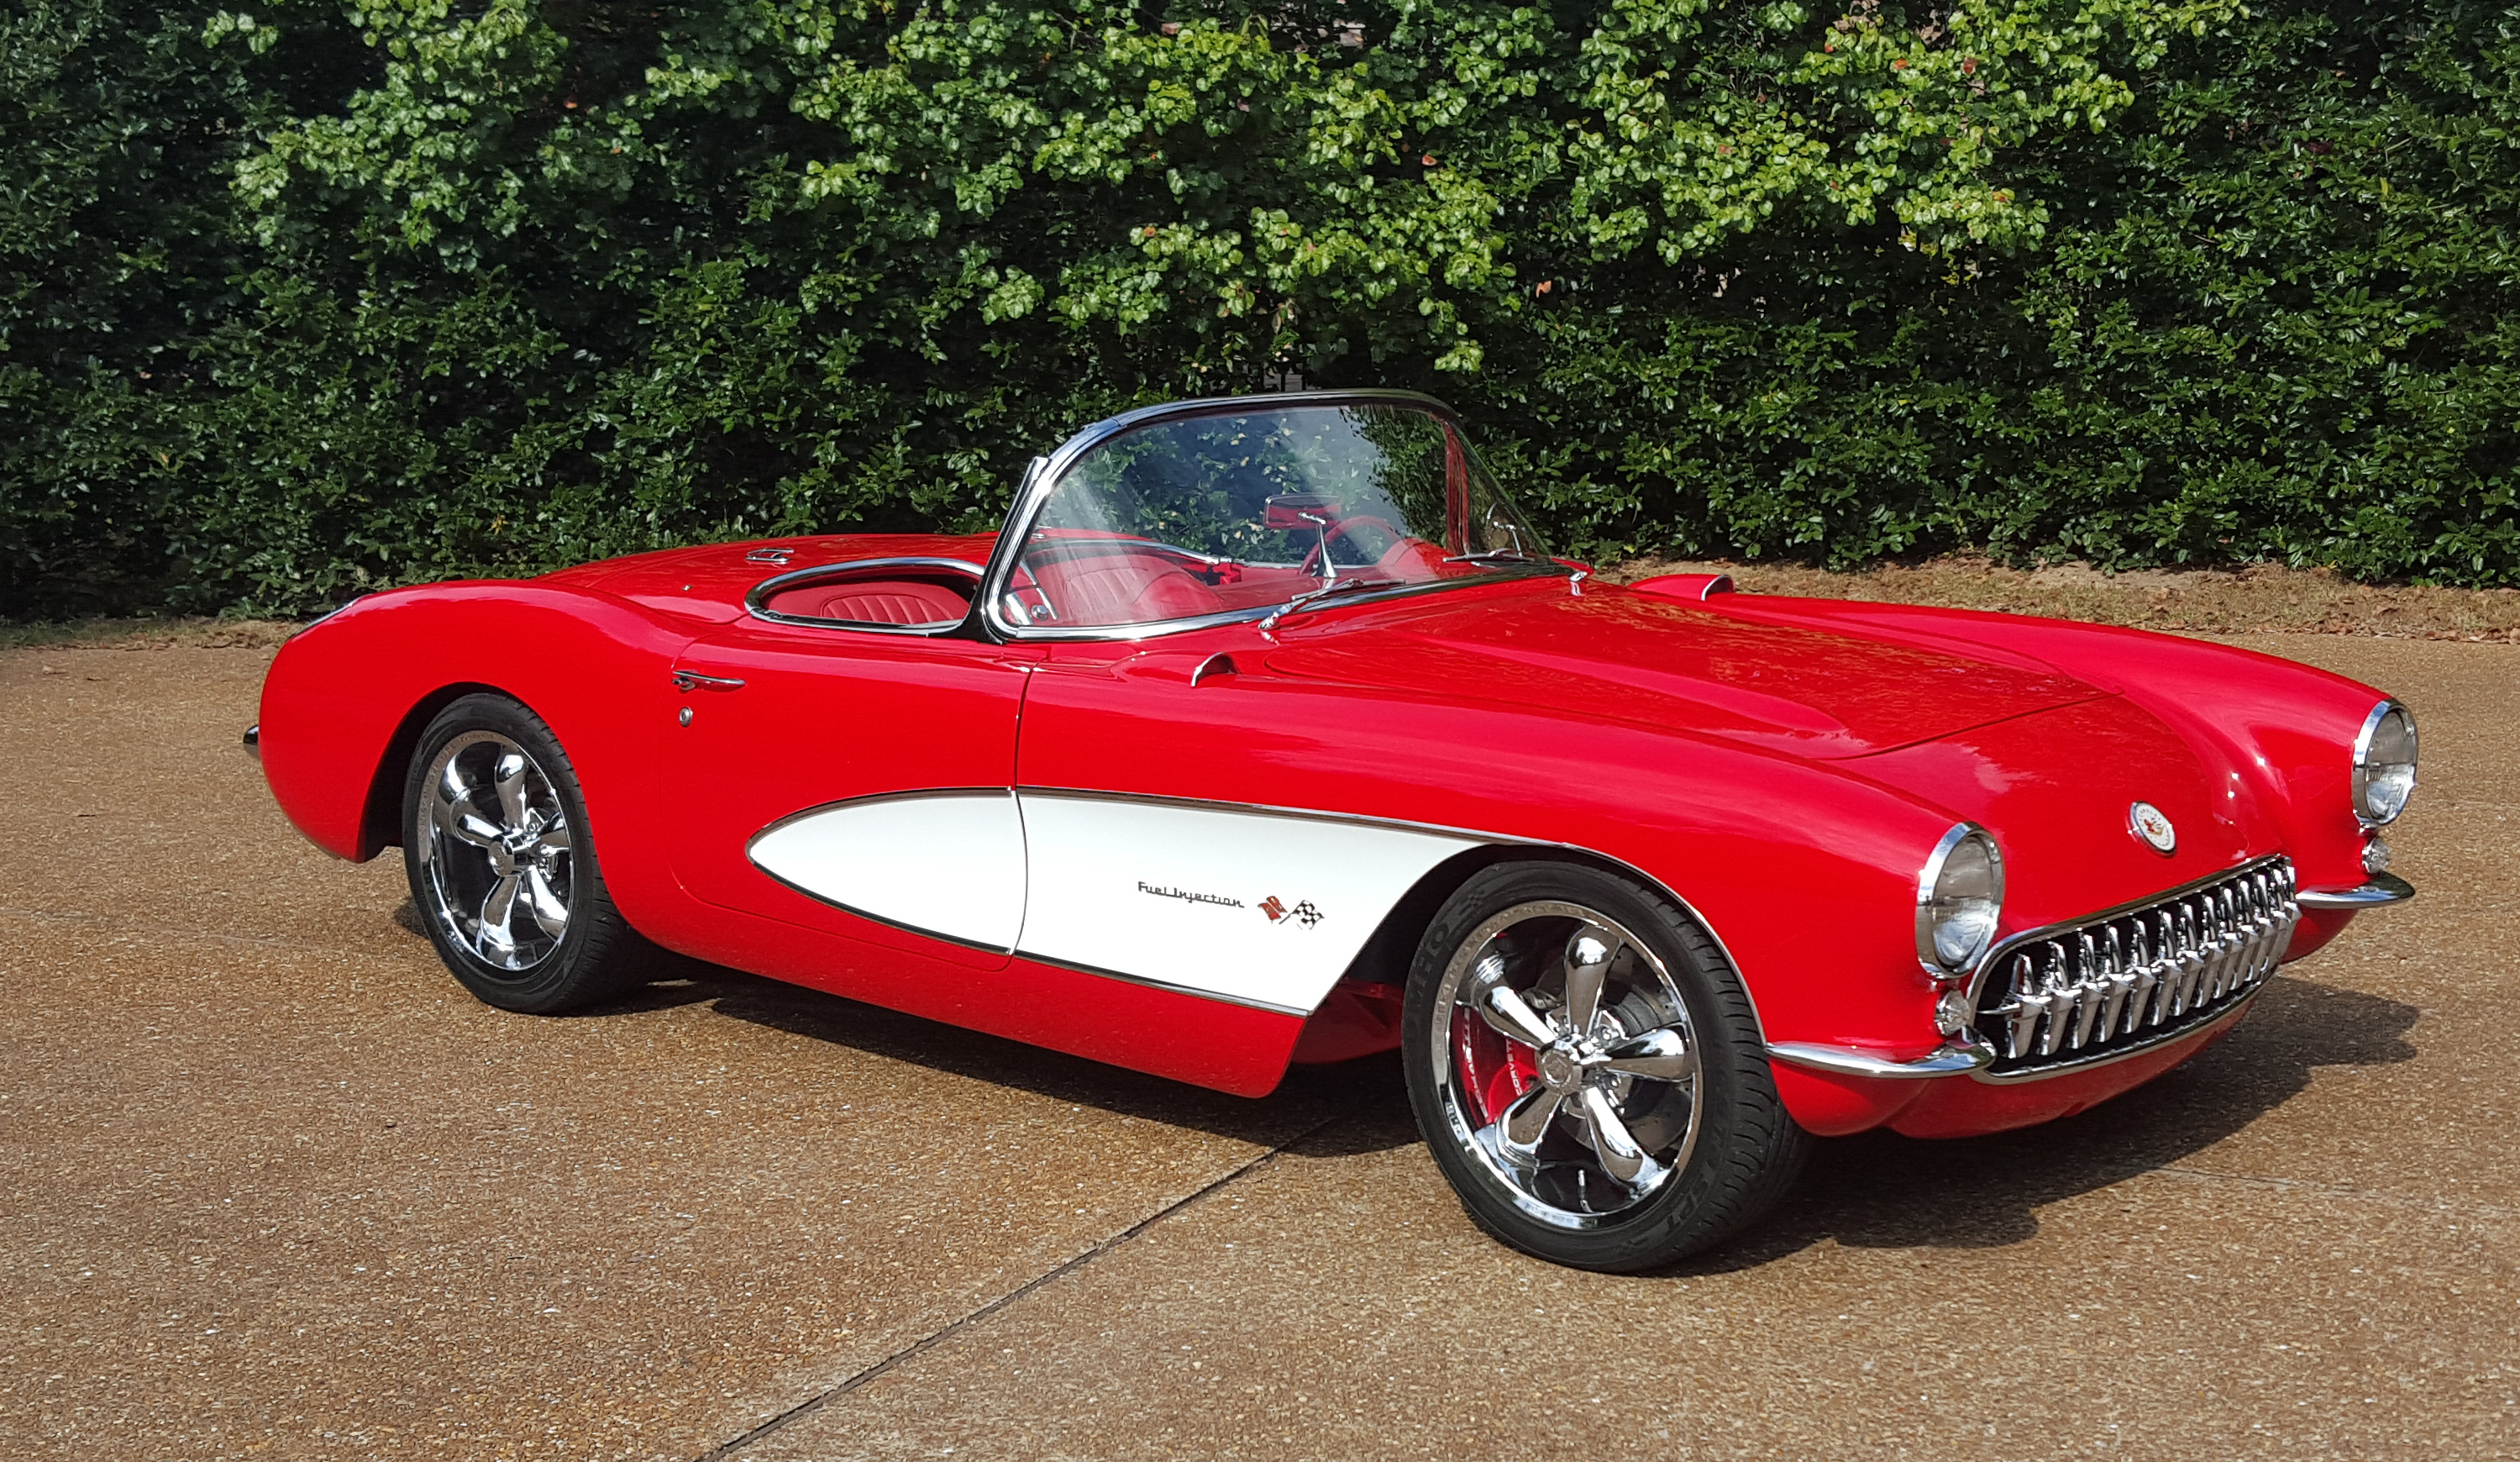 1959 Corvette Restomod For Sale Upcomingcarshq Com